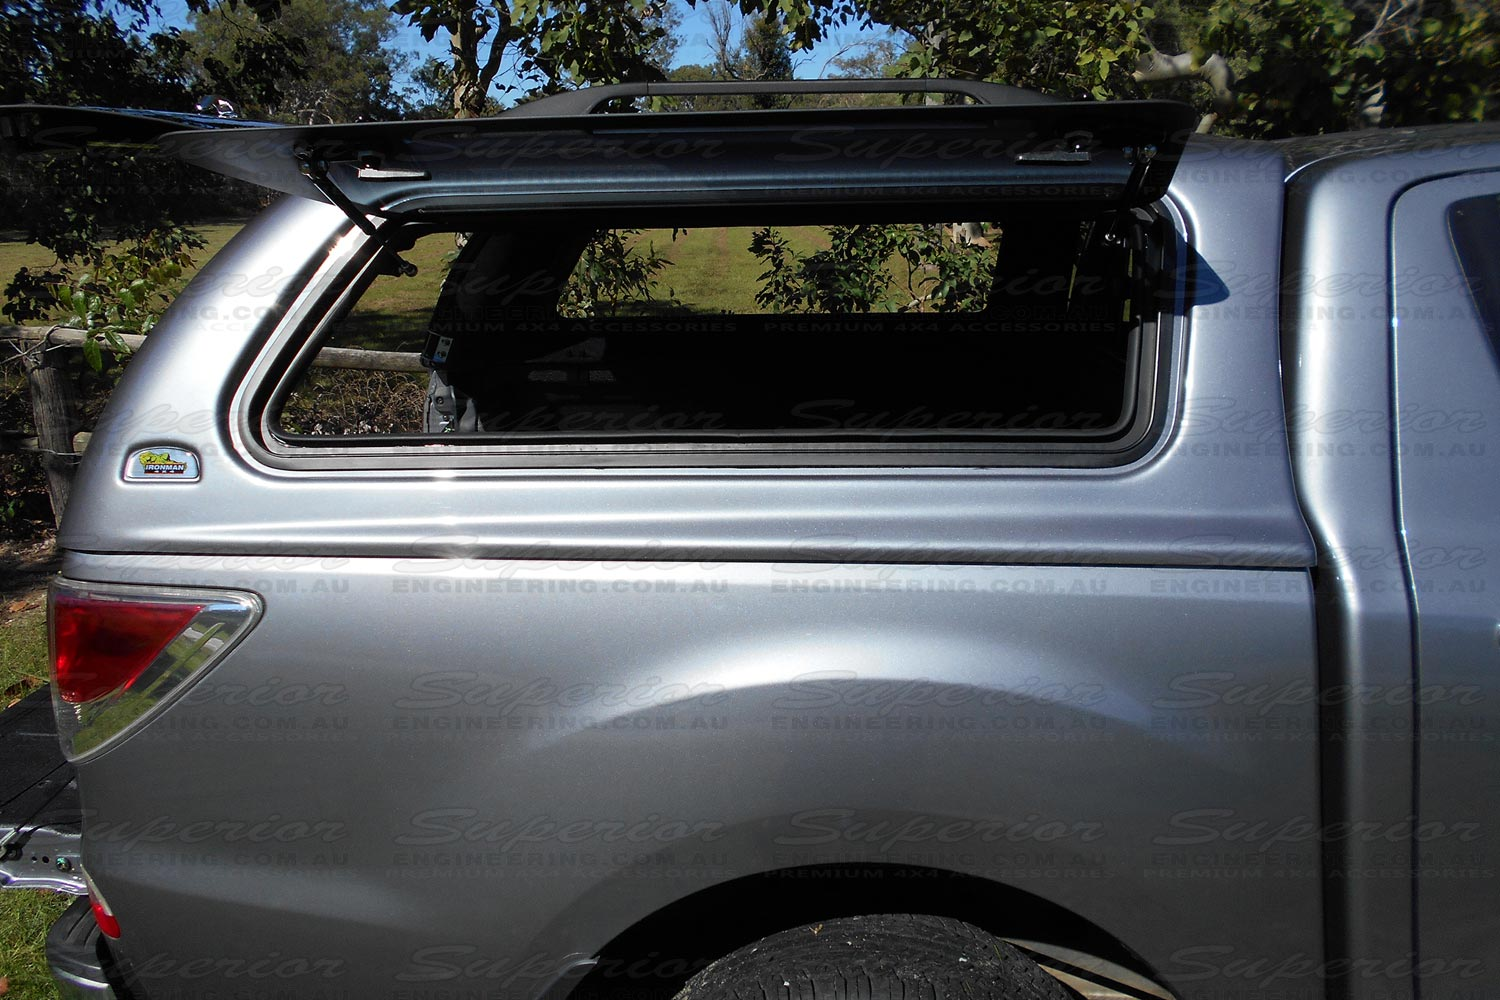 Right side window of the Ironman 4x4 Thermoplas Canopy fully opened while mounted to the Mazda BT-50